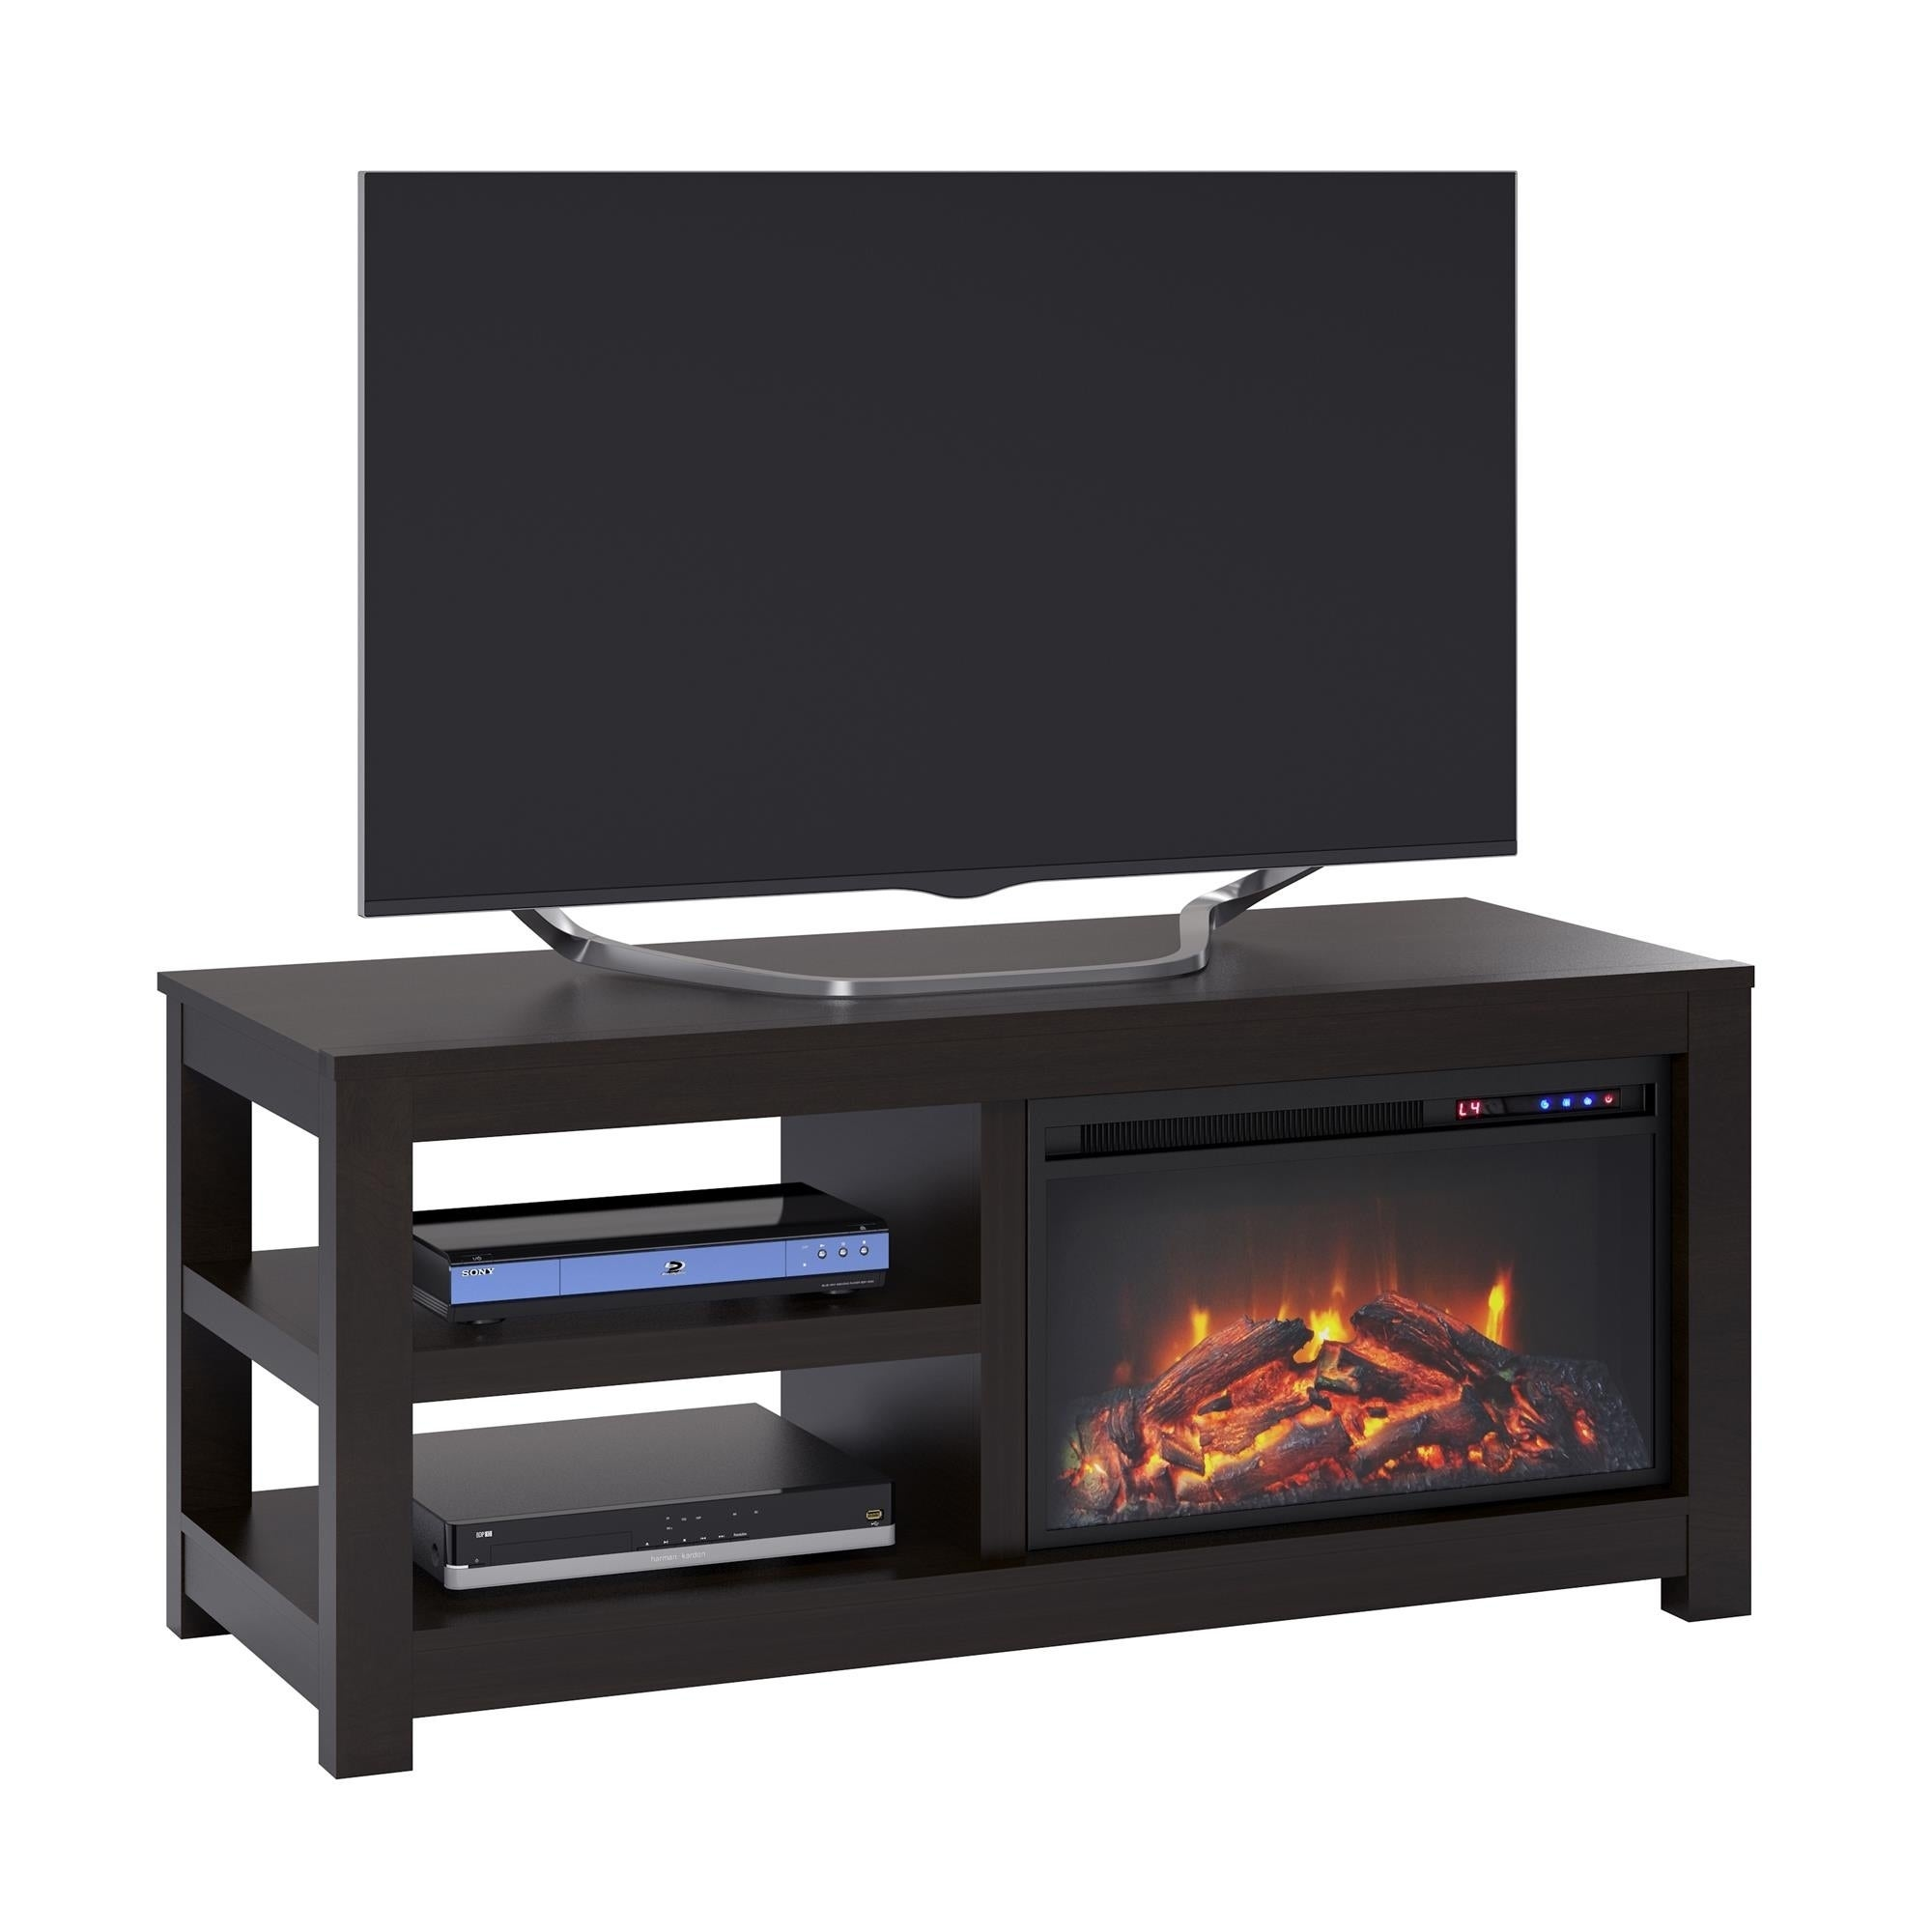 Avenue Greene Jack Electric Fireplace Tv Stand For Tvs Up To 55 Inches